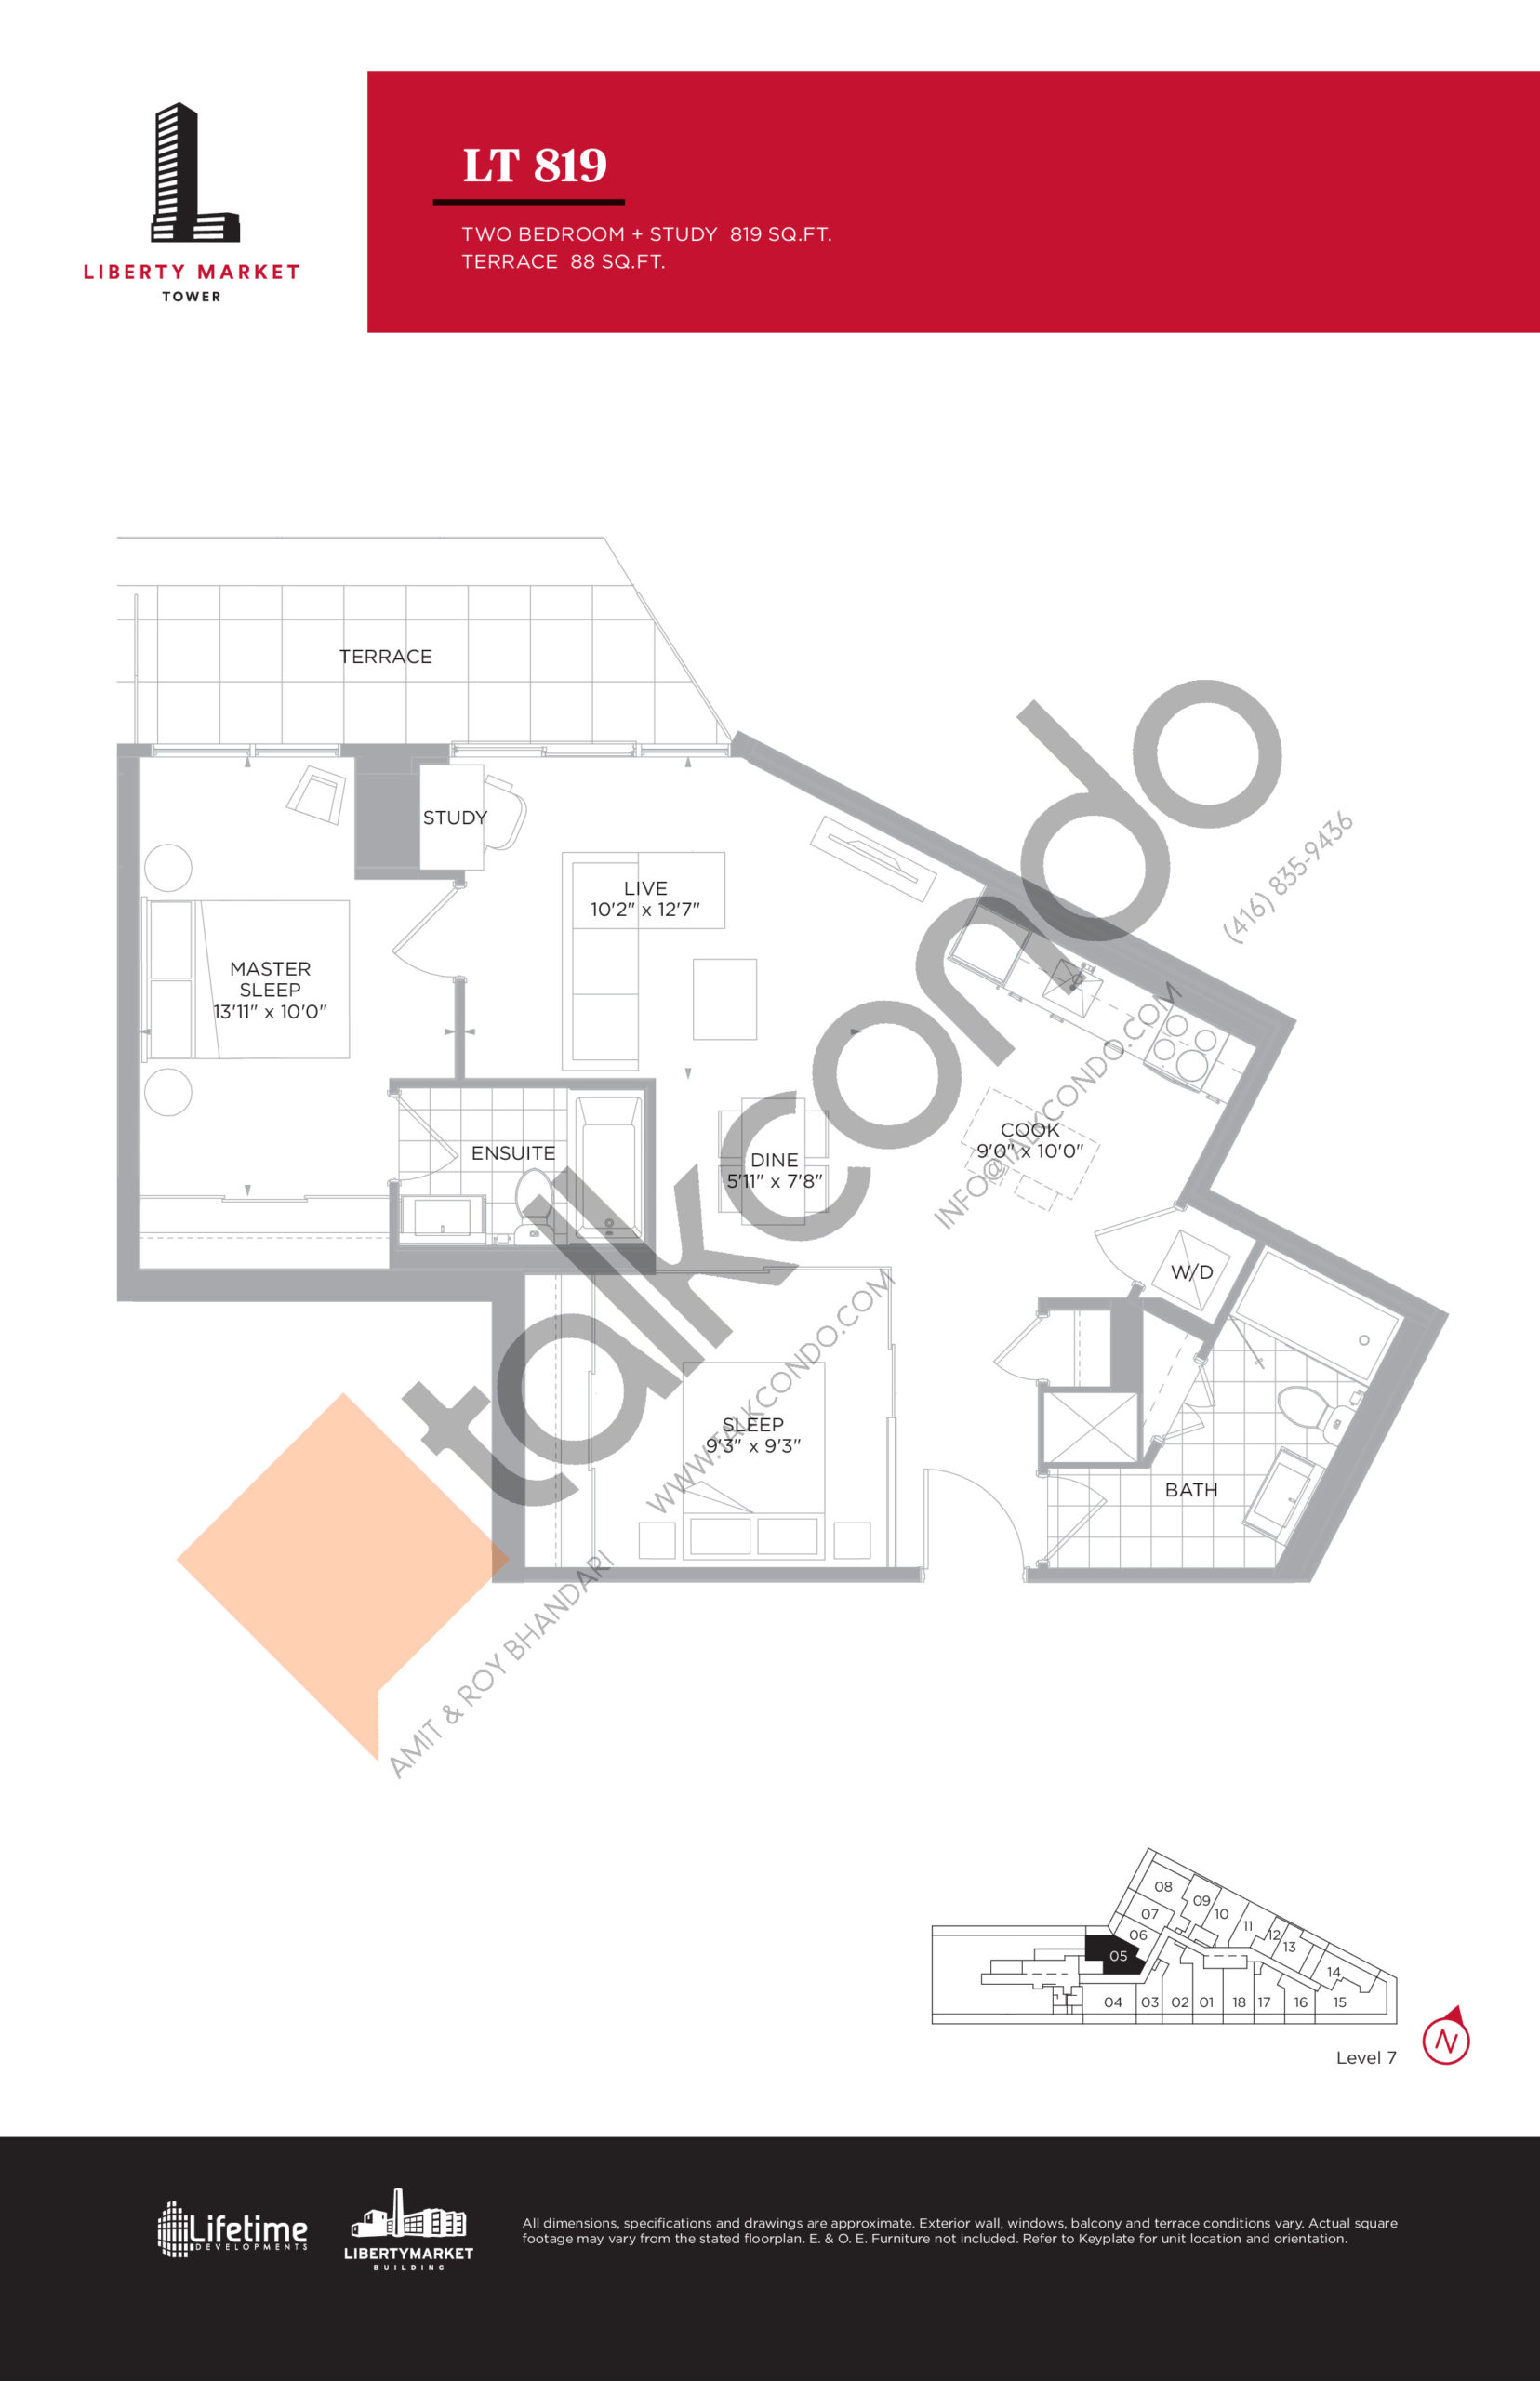 LT 819 - Terrace Collection Floor Plan at Liberty Market Tower Condos - 819 sq.ft